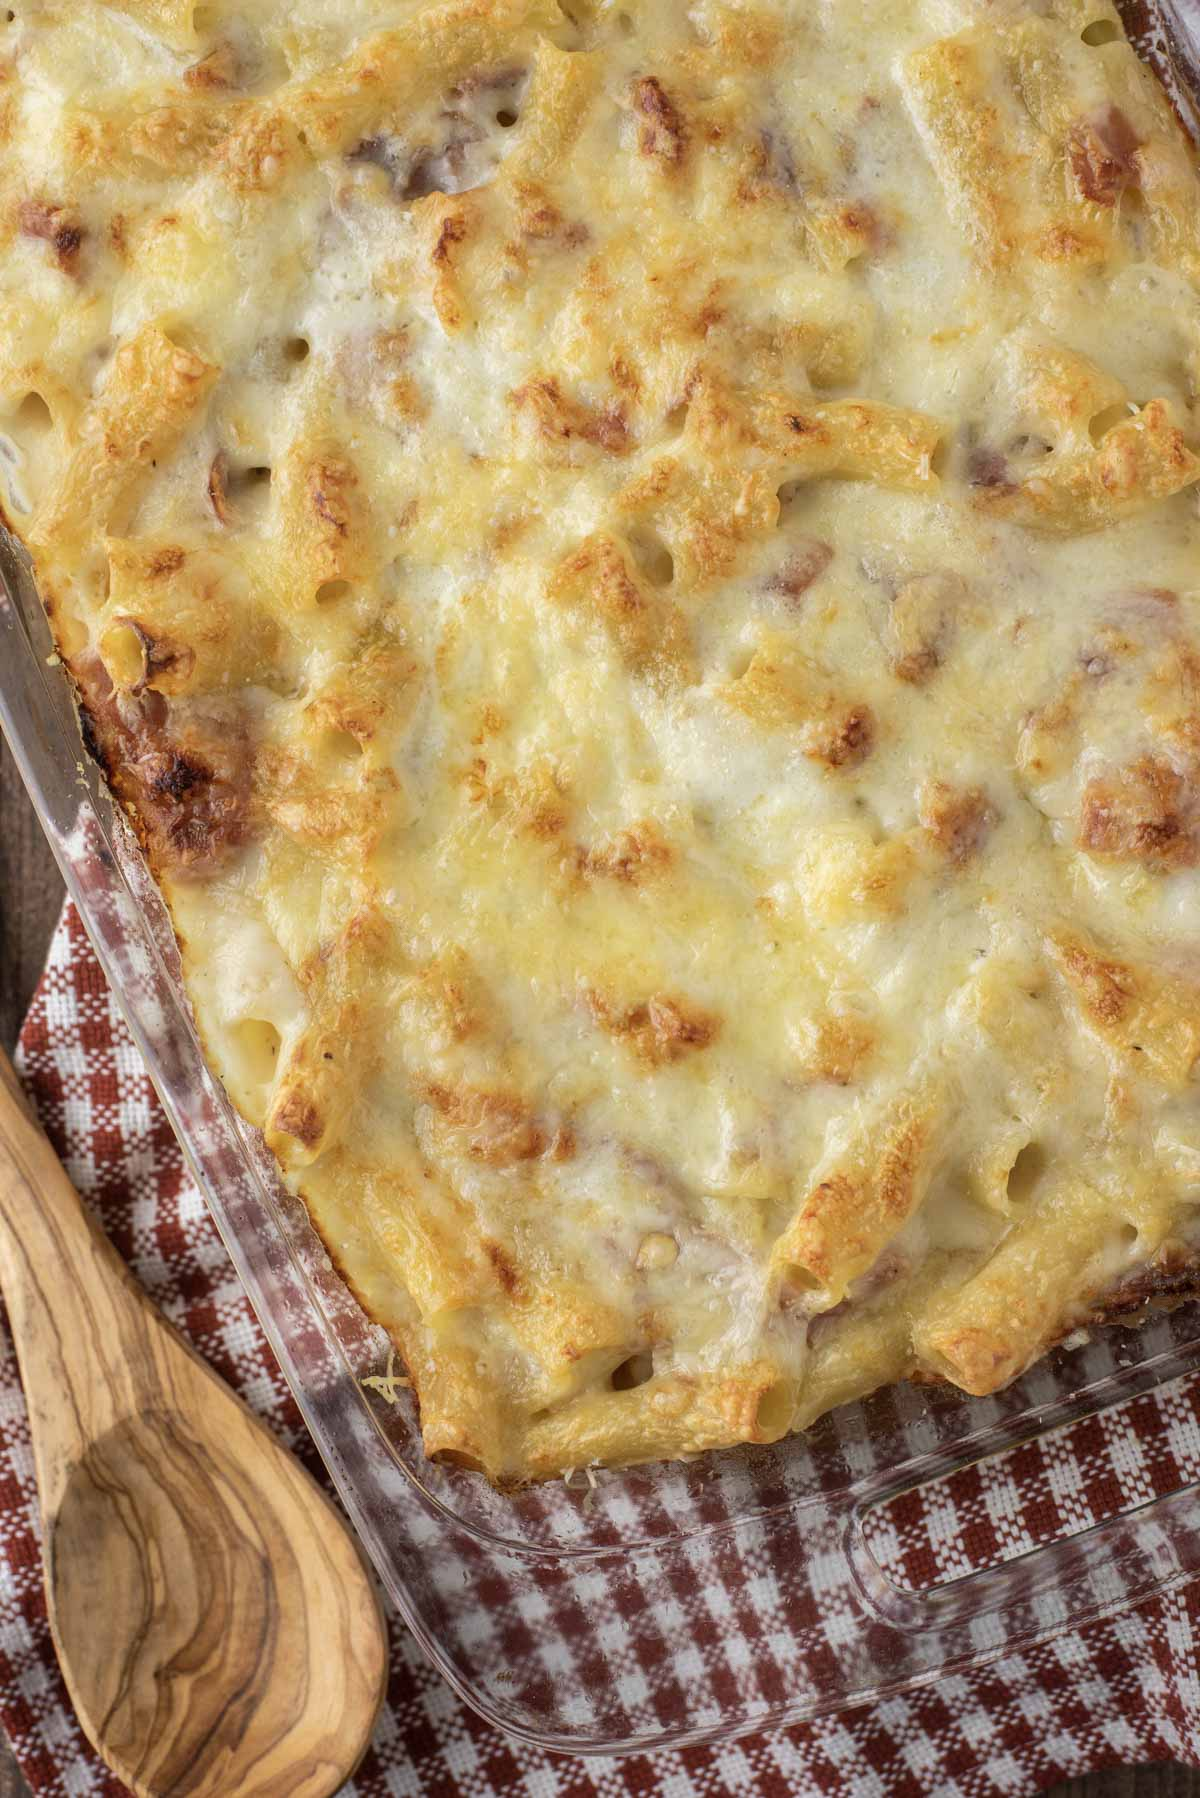 overhead shot of baked rigatoni in glass baking dish with wooden spoon